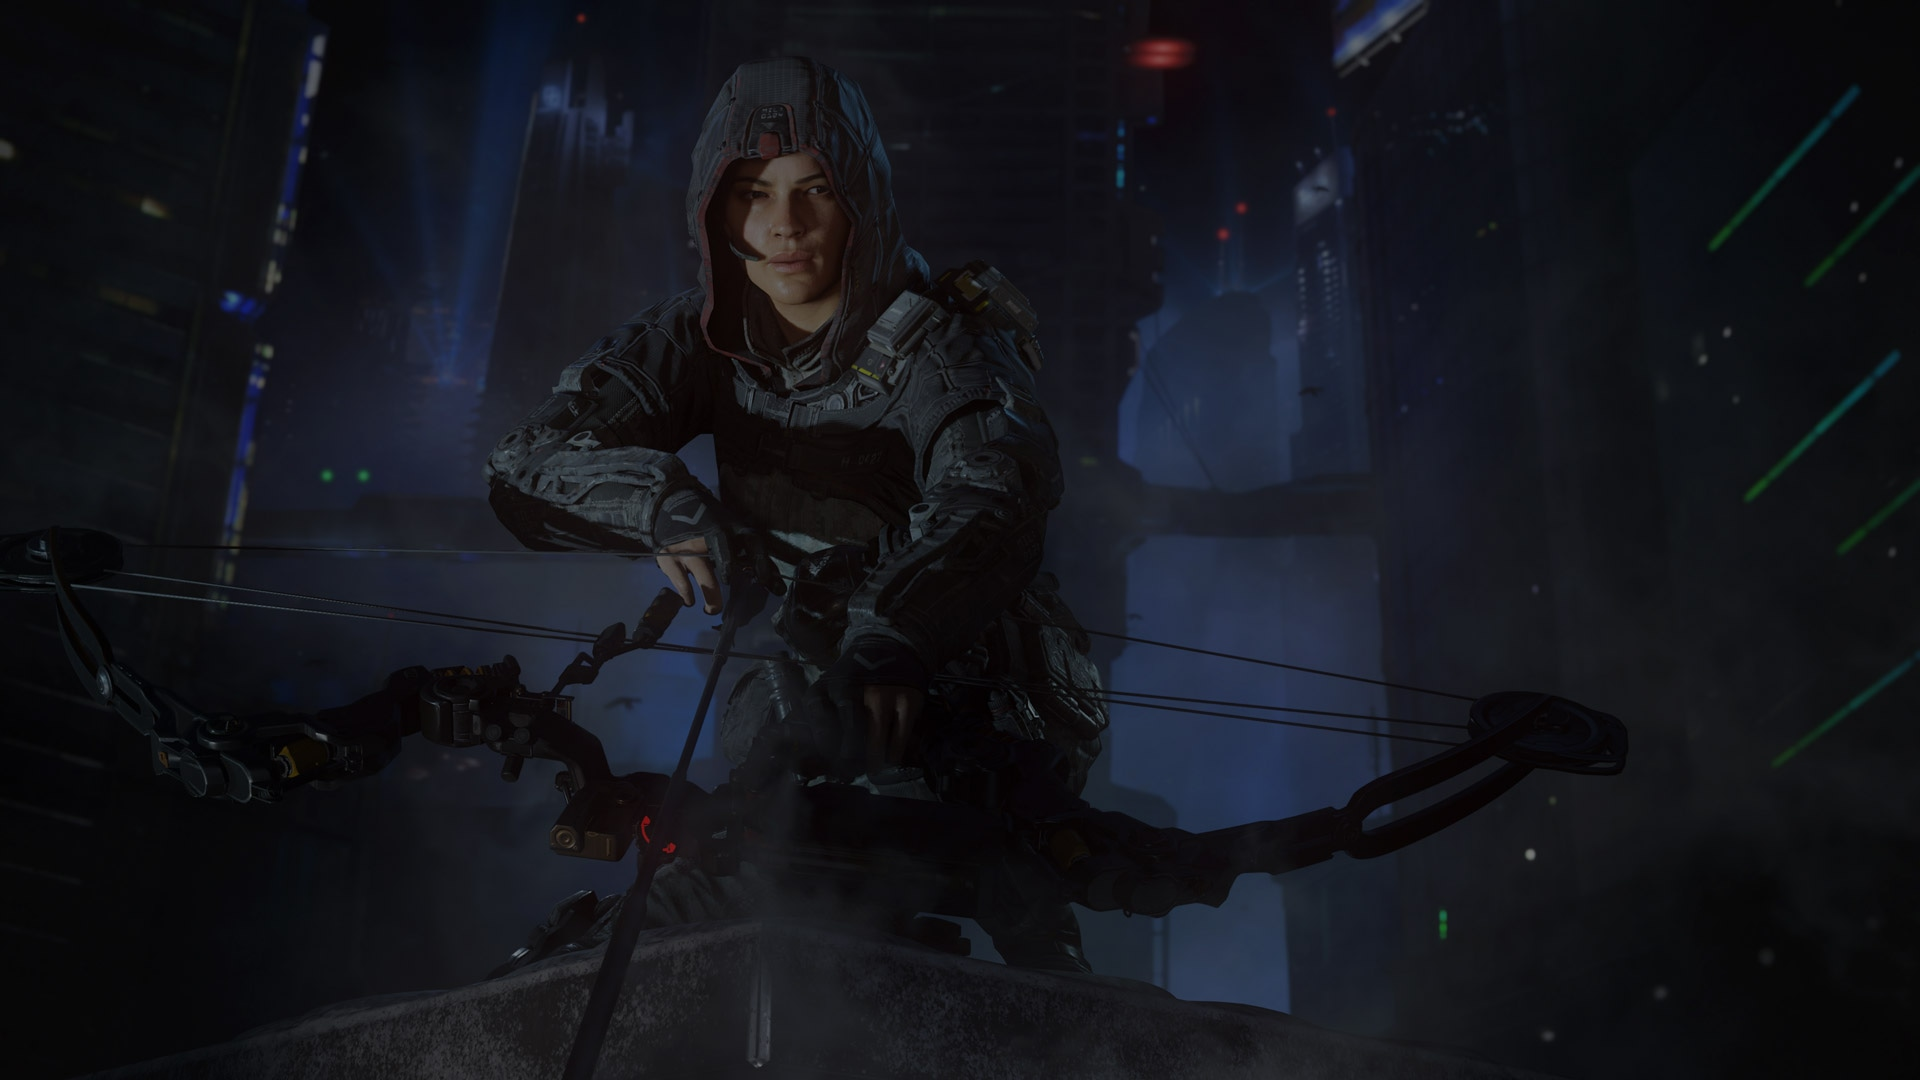 New Hi Res Images For The 8 Known Black Ops 3 Specialist